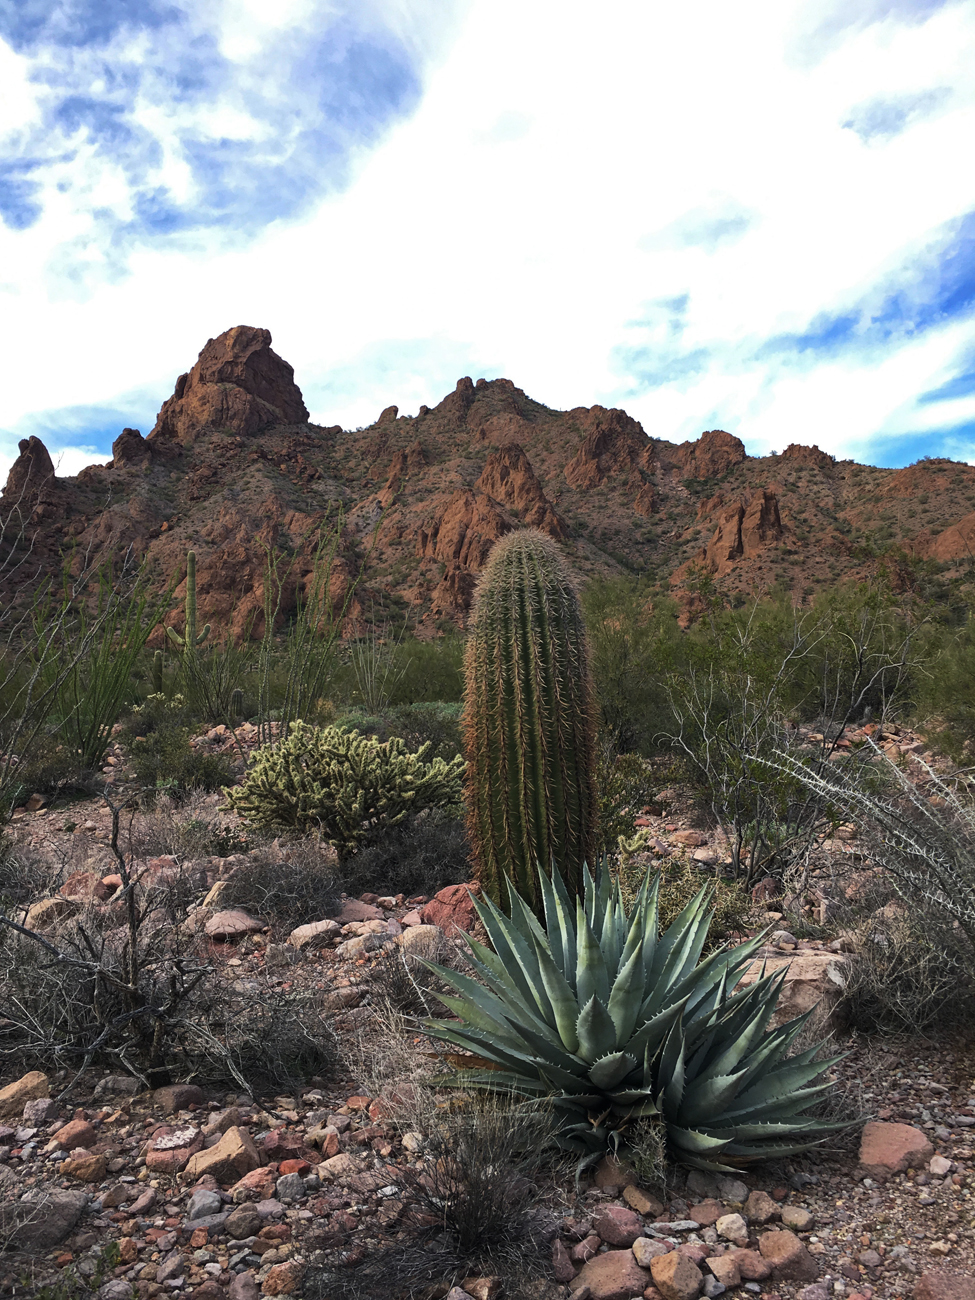 Agave and cacti in Kofa Queen Canyon